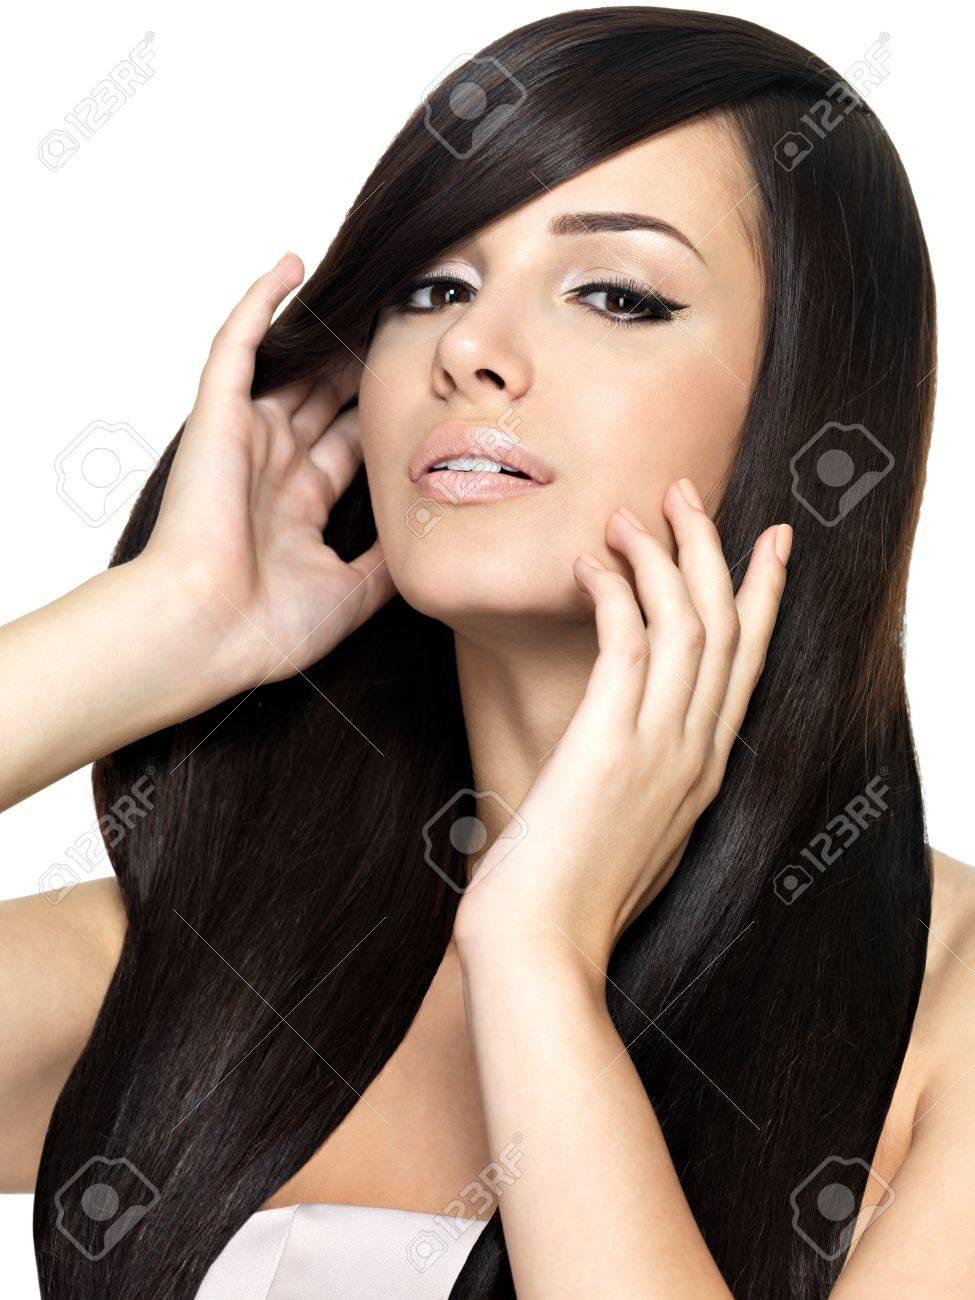 Woman with beauty long straight hair. Pretty young girl with beautiful hairstyle. Creative studio image. Stock Photo - 16105105